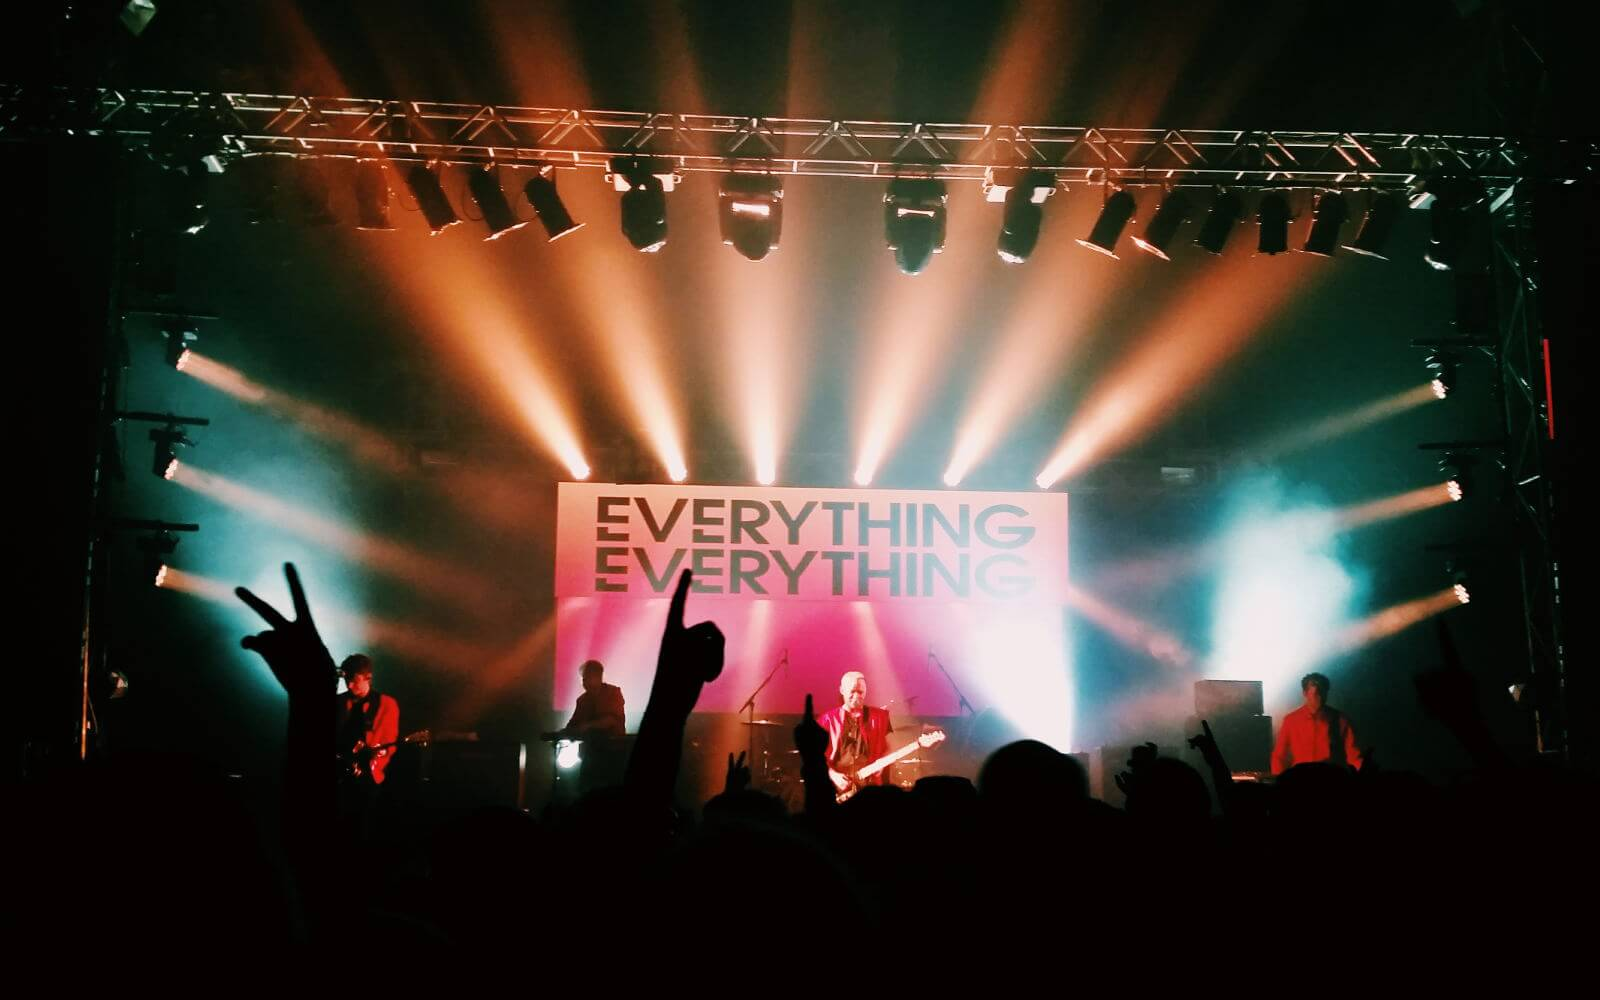 Everything Everything performing at Festival no. 6 2015